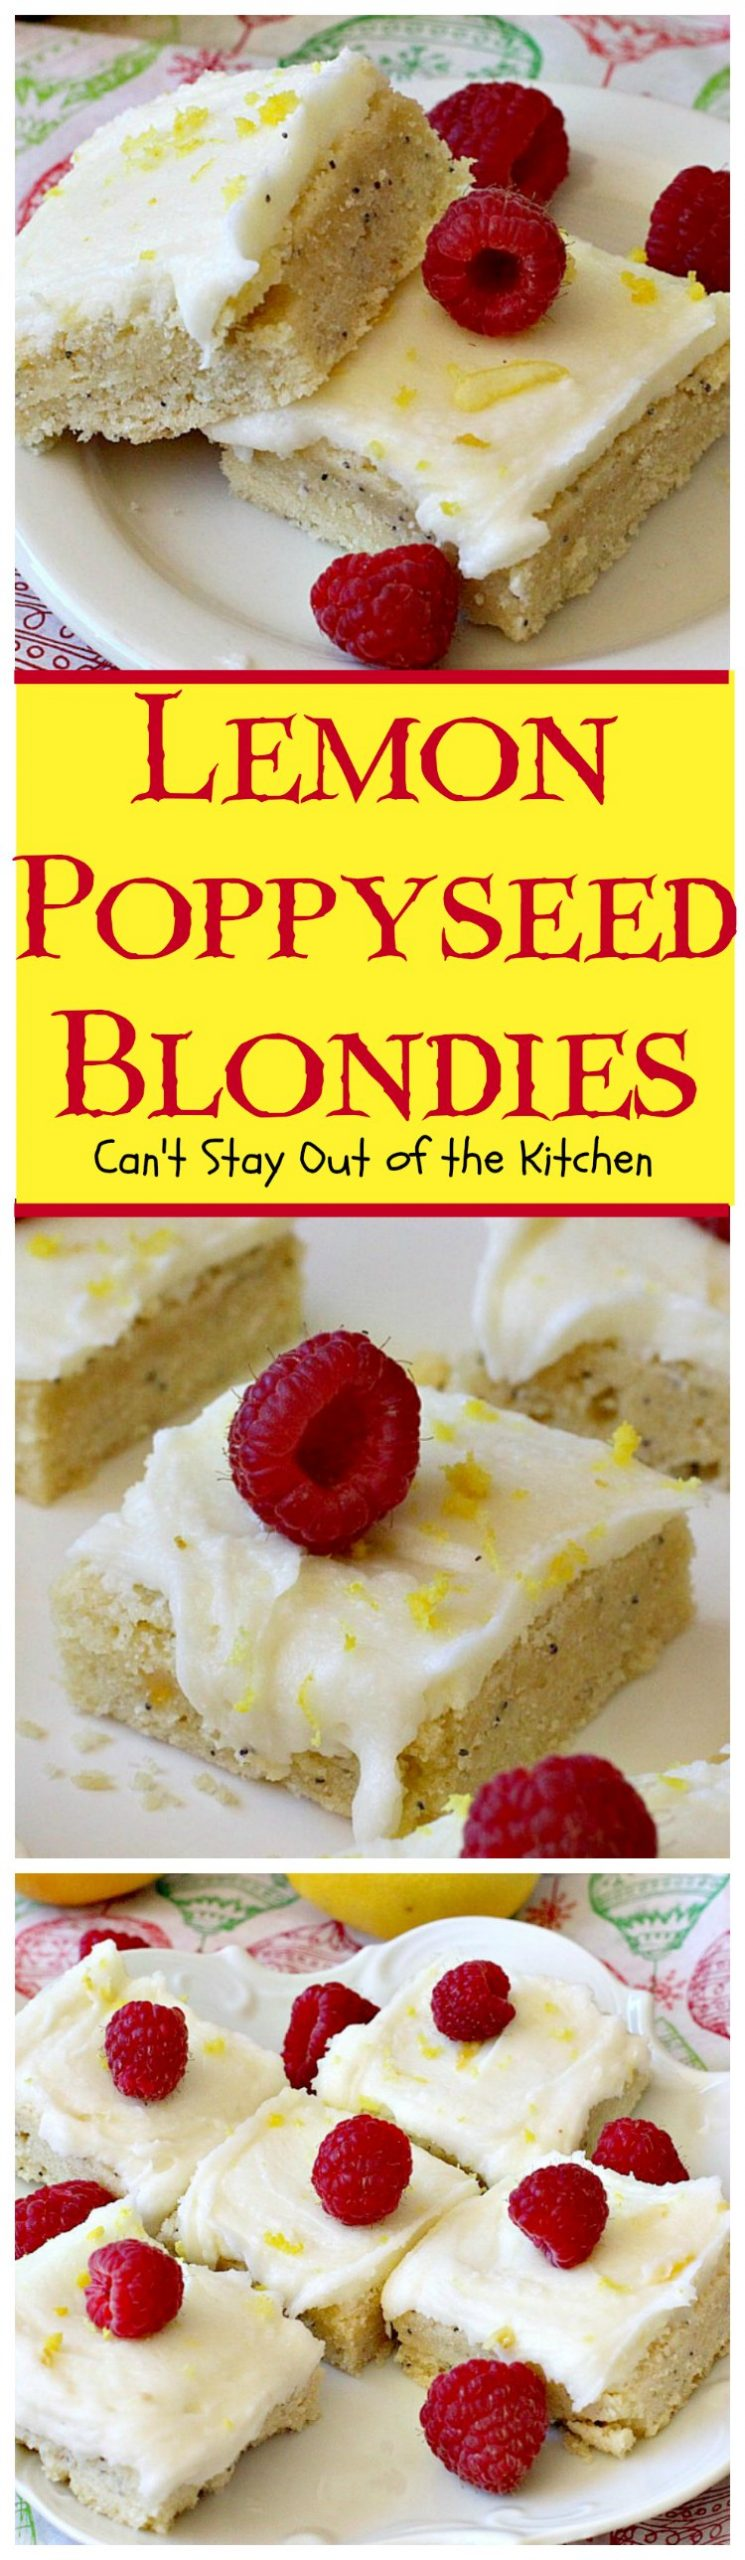 Lemon Poppyseed Blondies   Can't Stay Out of the Kitchen